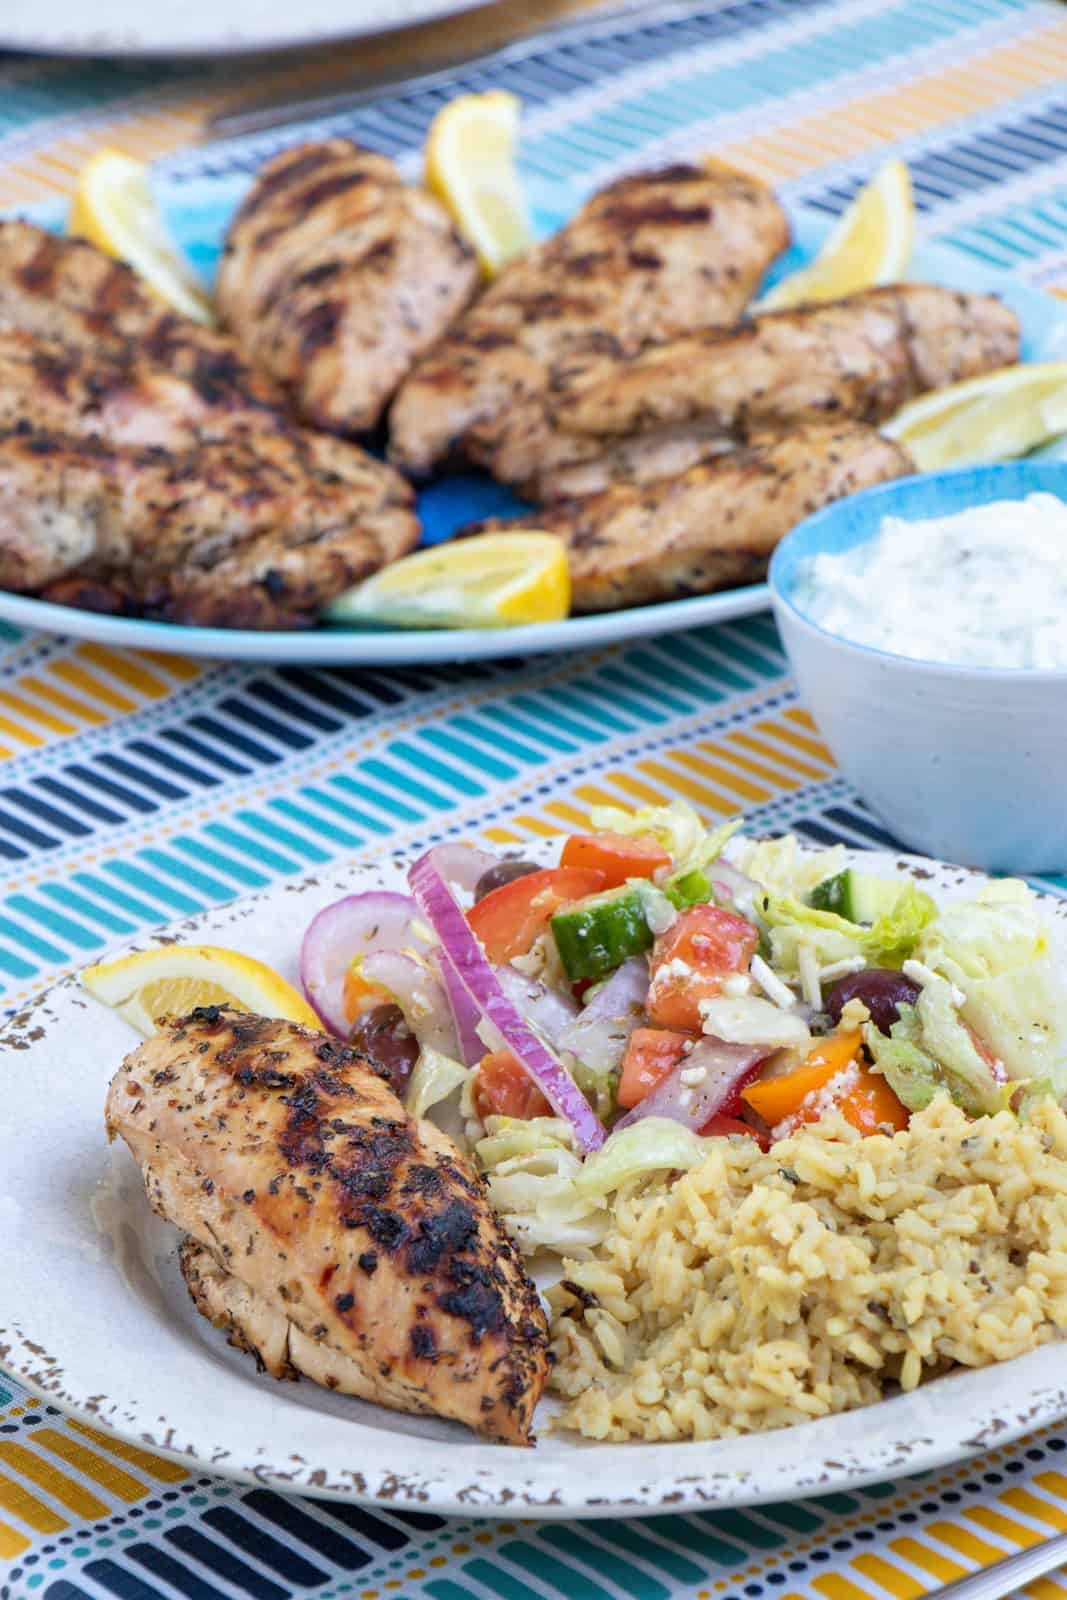 A plate with chicken, rice and Greek salad.